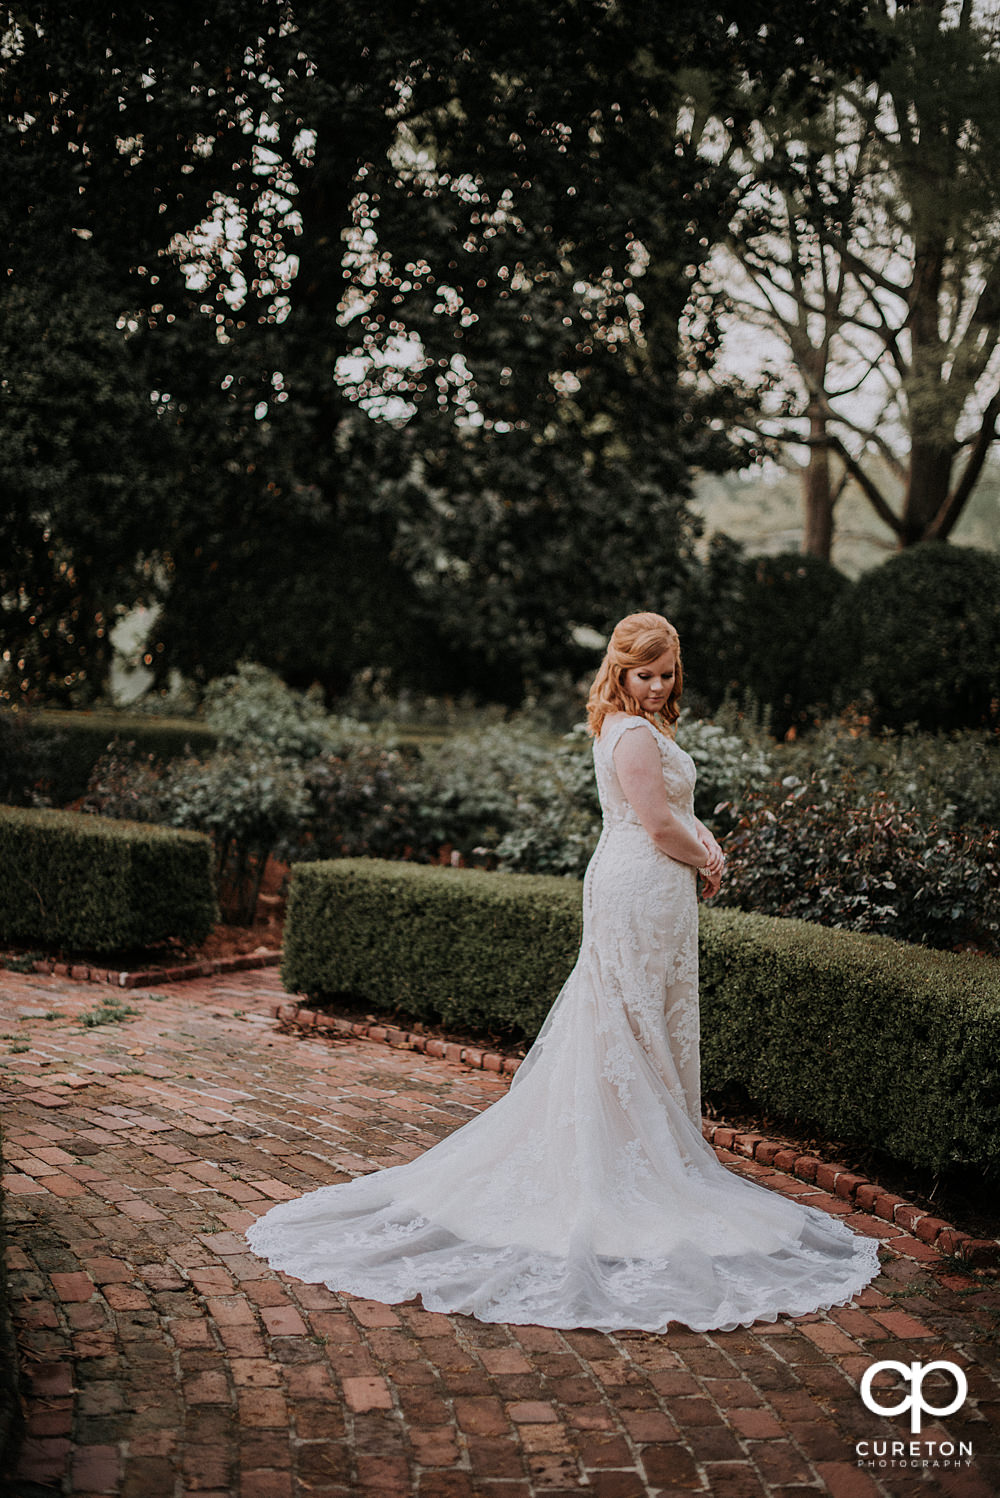 Epic shot of a bride in the rose garden at Furman campus.